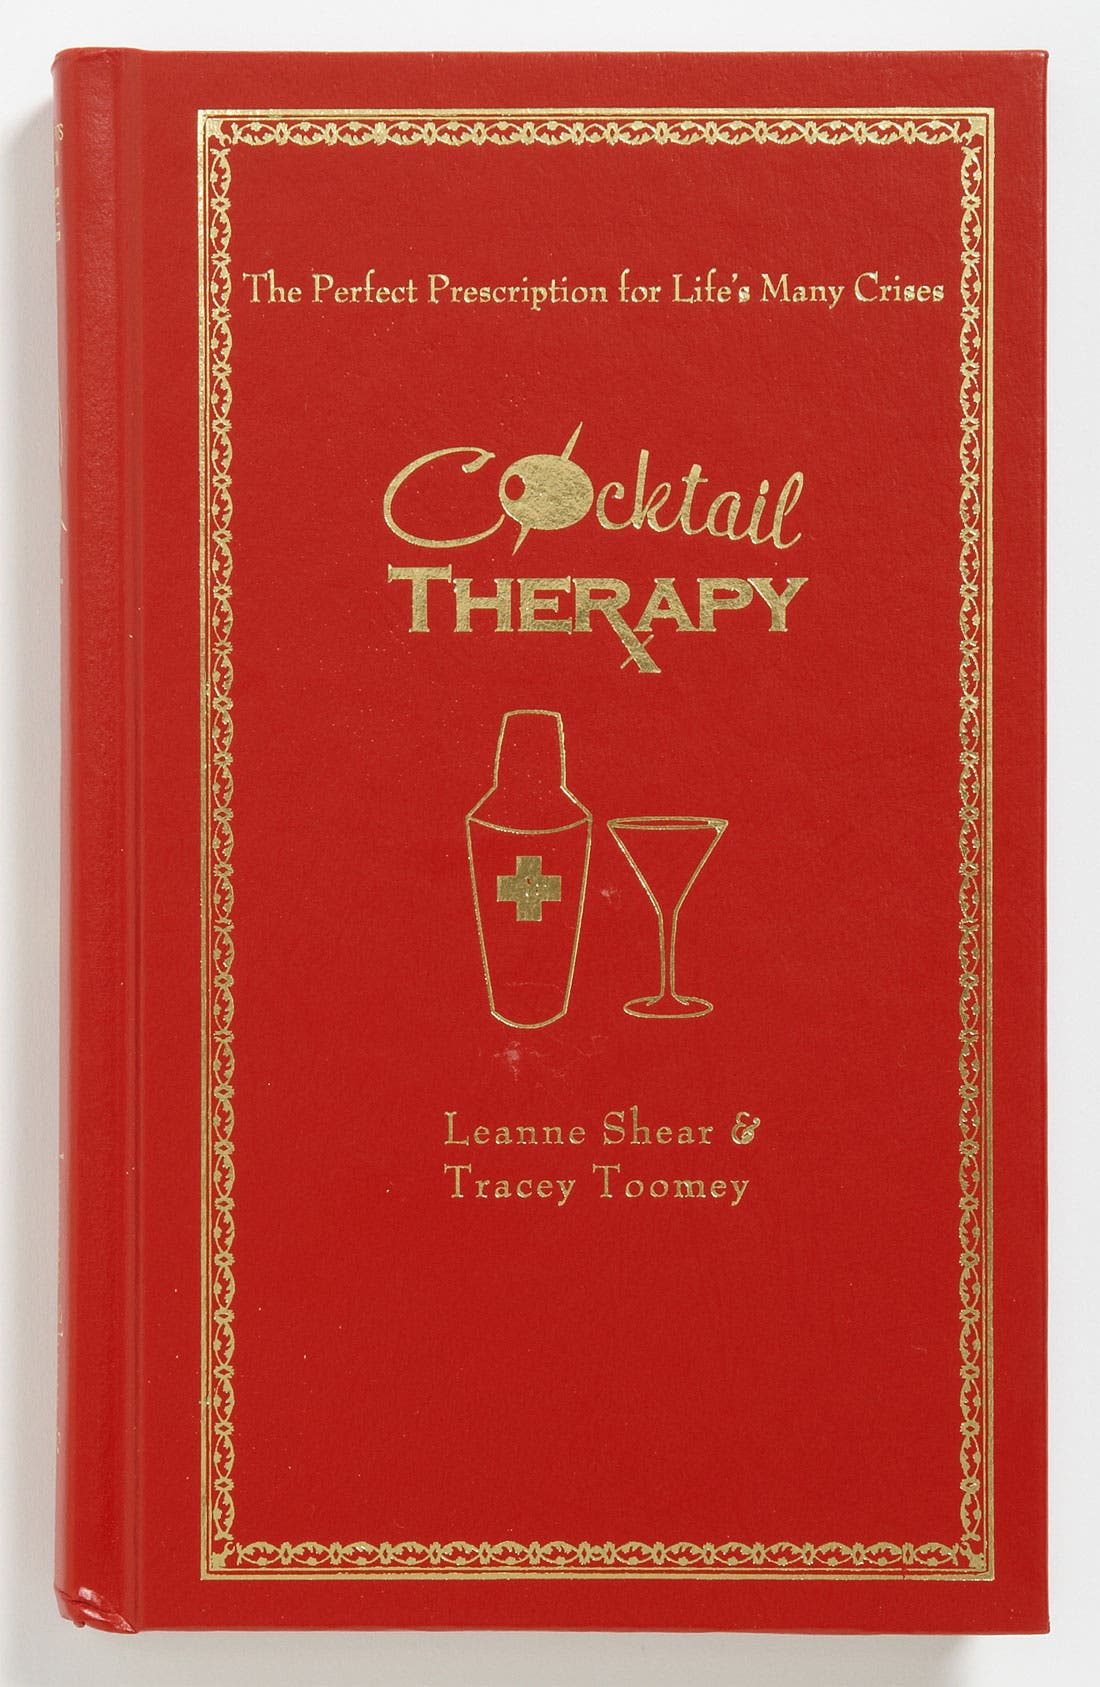 SIMON AND SCHUSTER, 'Cocktail Therapy' Guide Book, Main thumbnail 1, color, 960